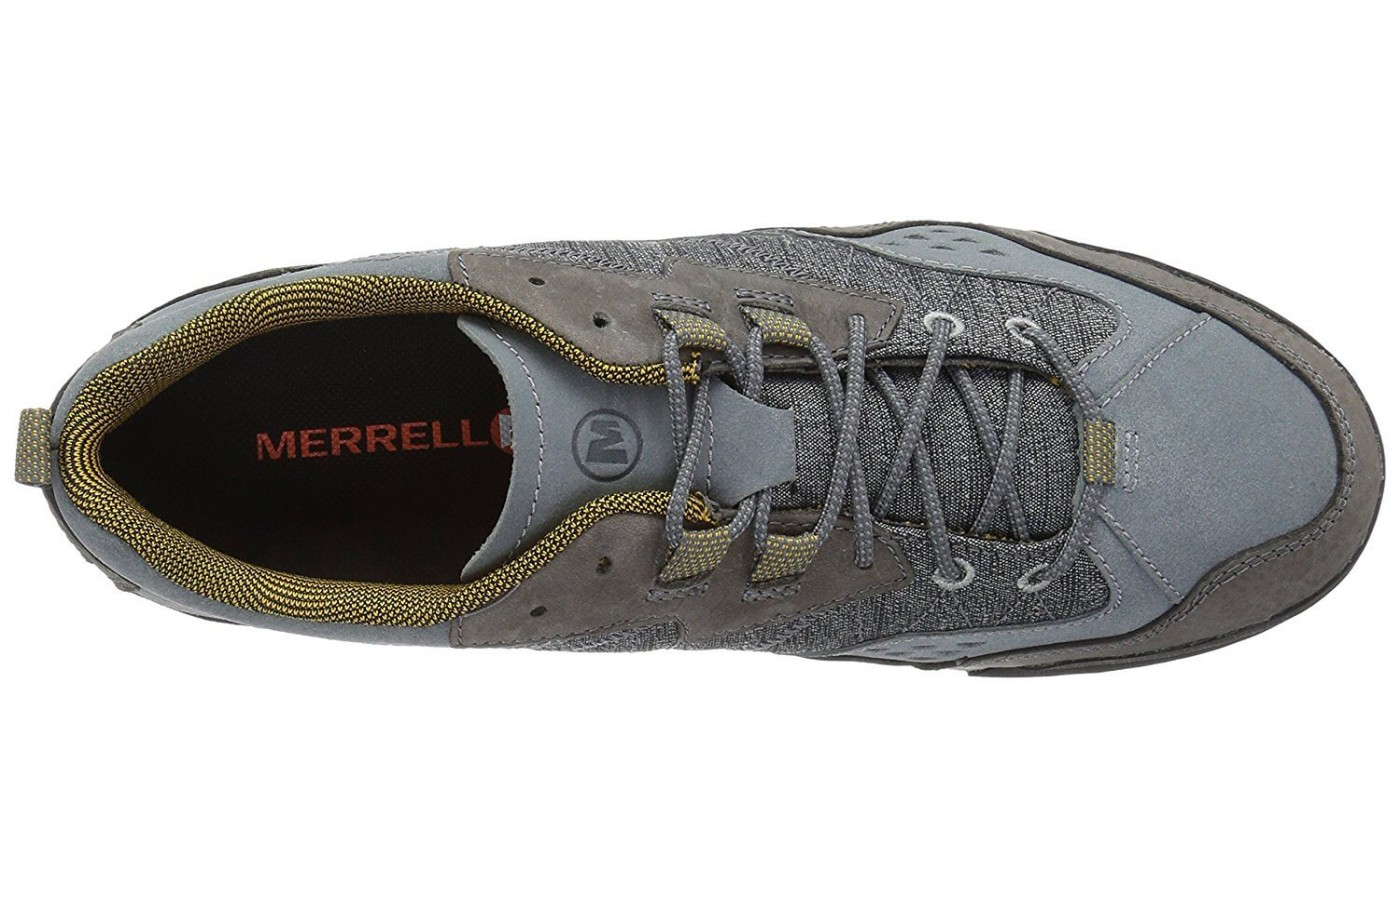 The Merrell Burnt Rock features a mesh liner for enhanced breathability